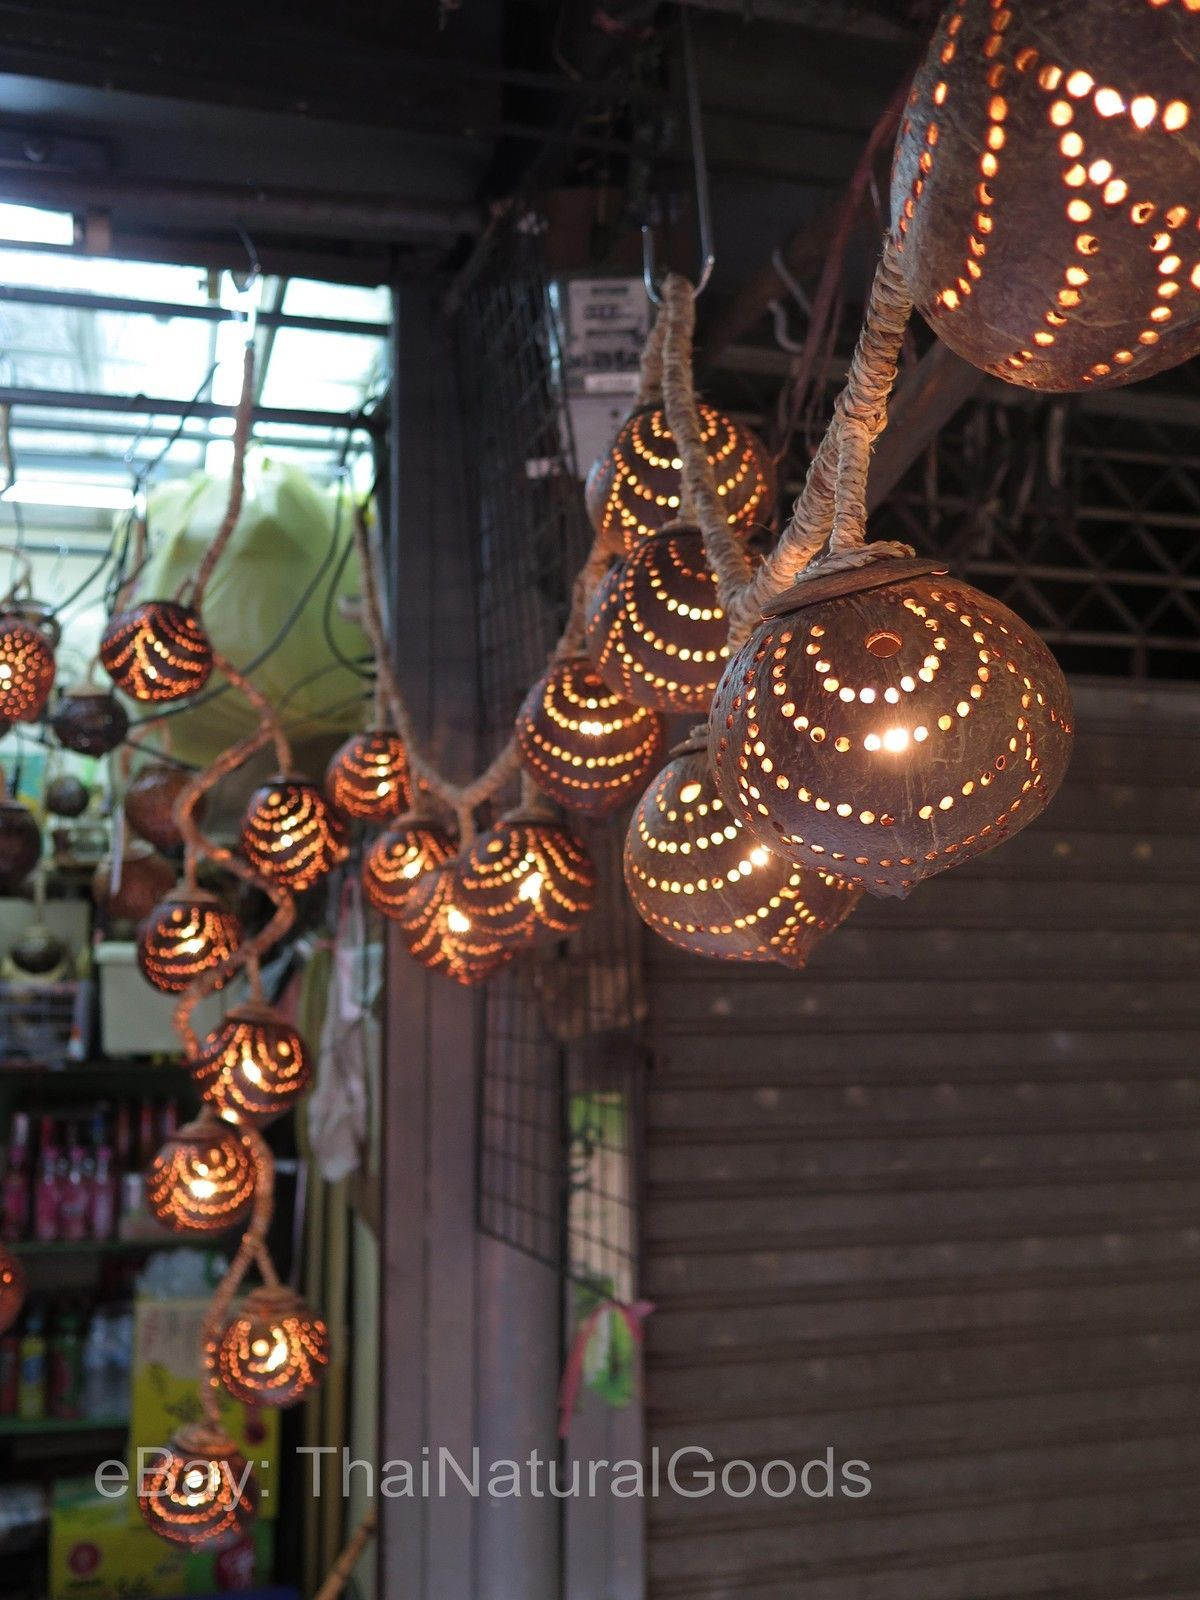 New wooden hanging lamps made of coconut shell asian night lights new wooden hanging lamps made of coconut shell asian night lights wood shades aloadofball Image collections